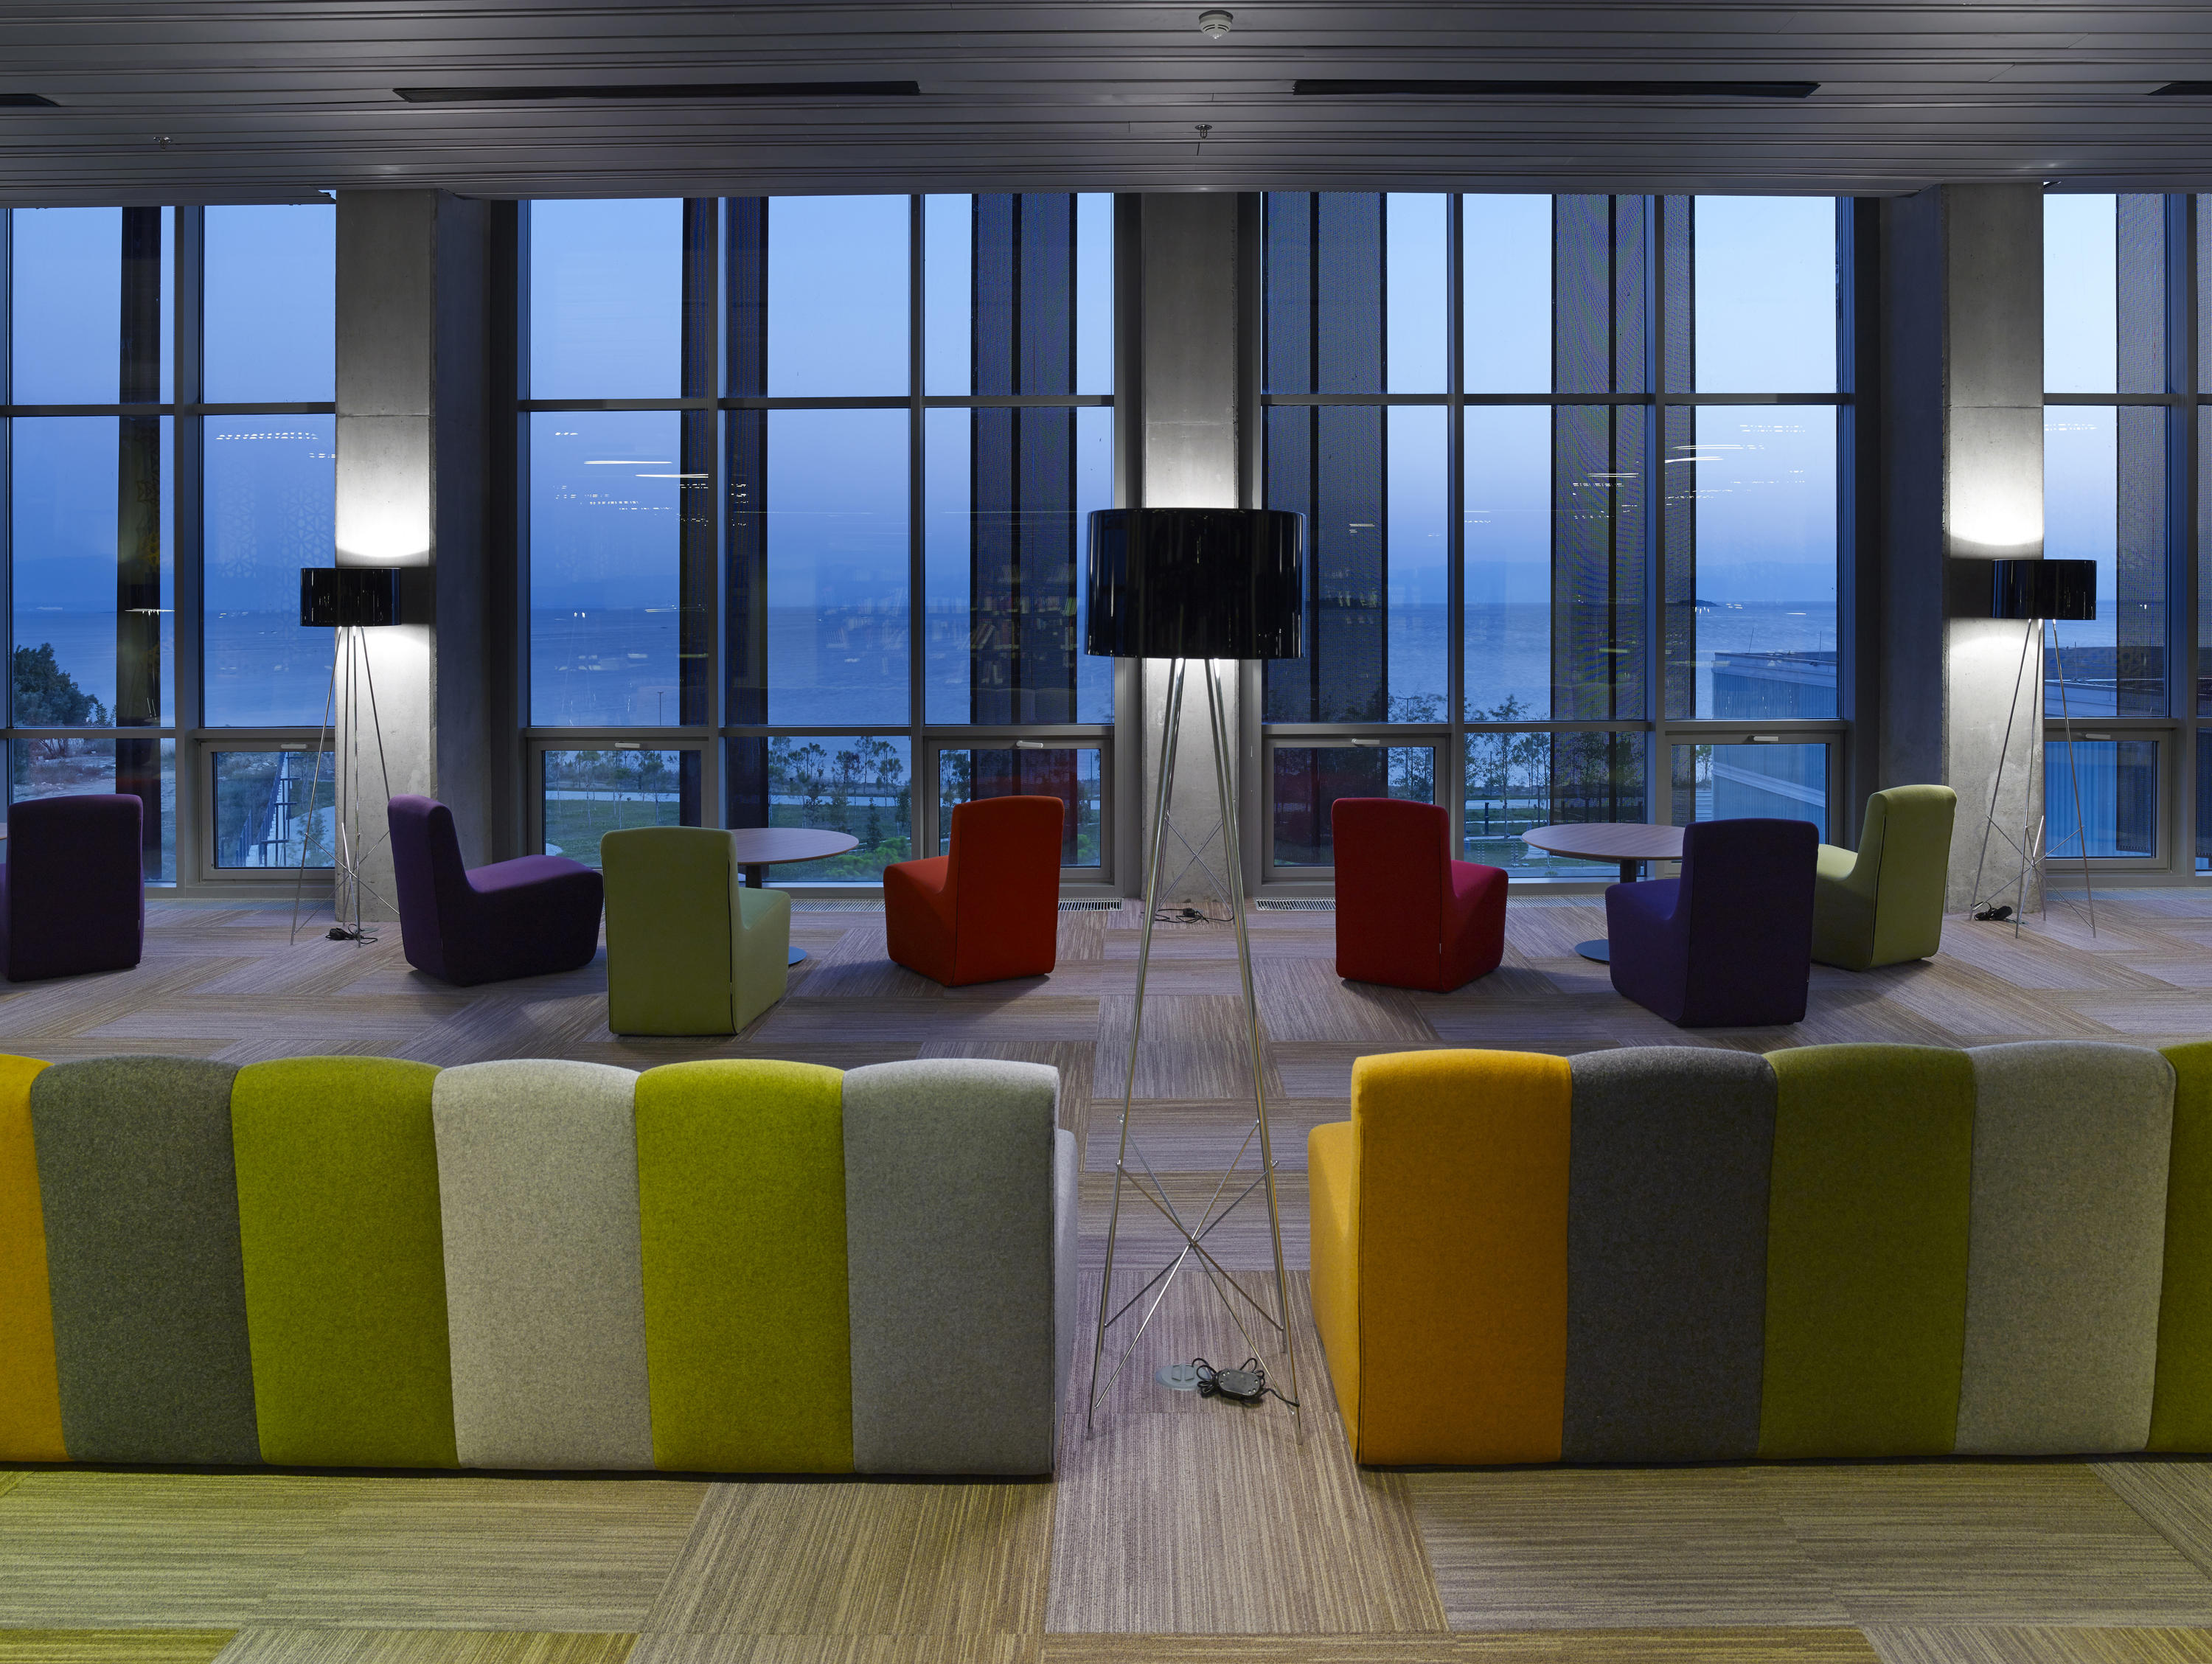 google turkey office. Dilim Sofa By Koleksiyon Furniture Google Turkey Office